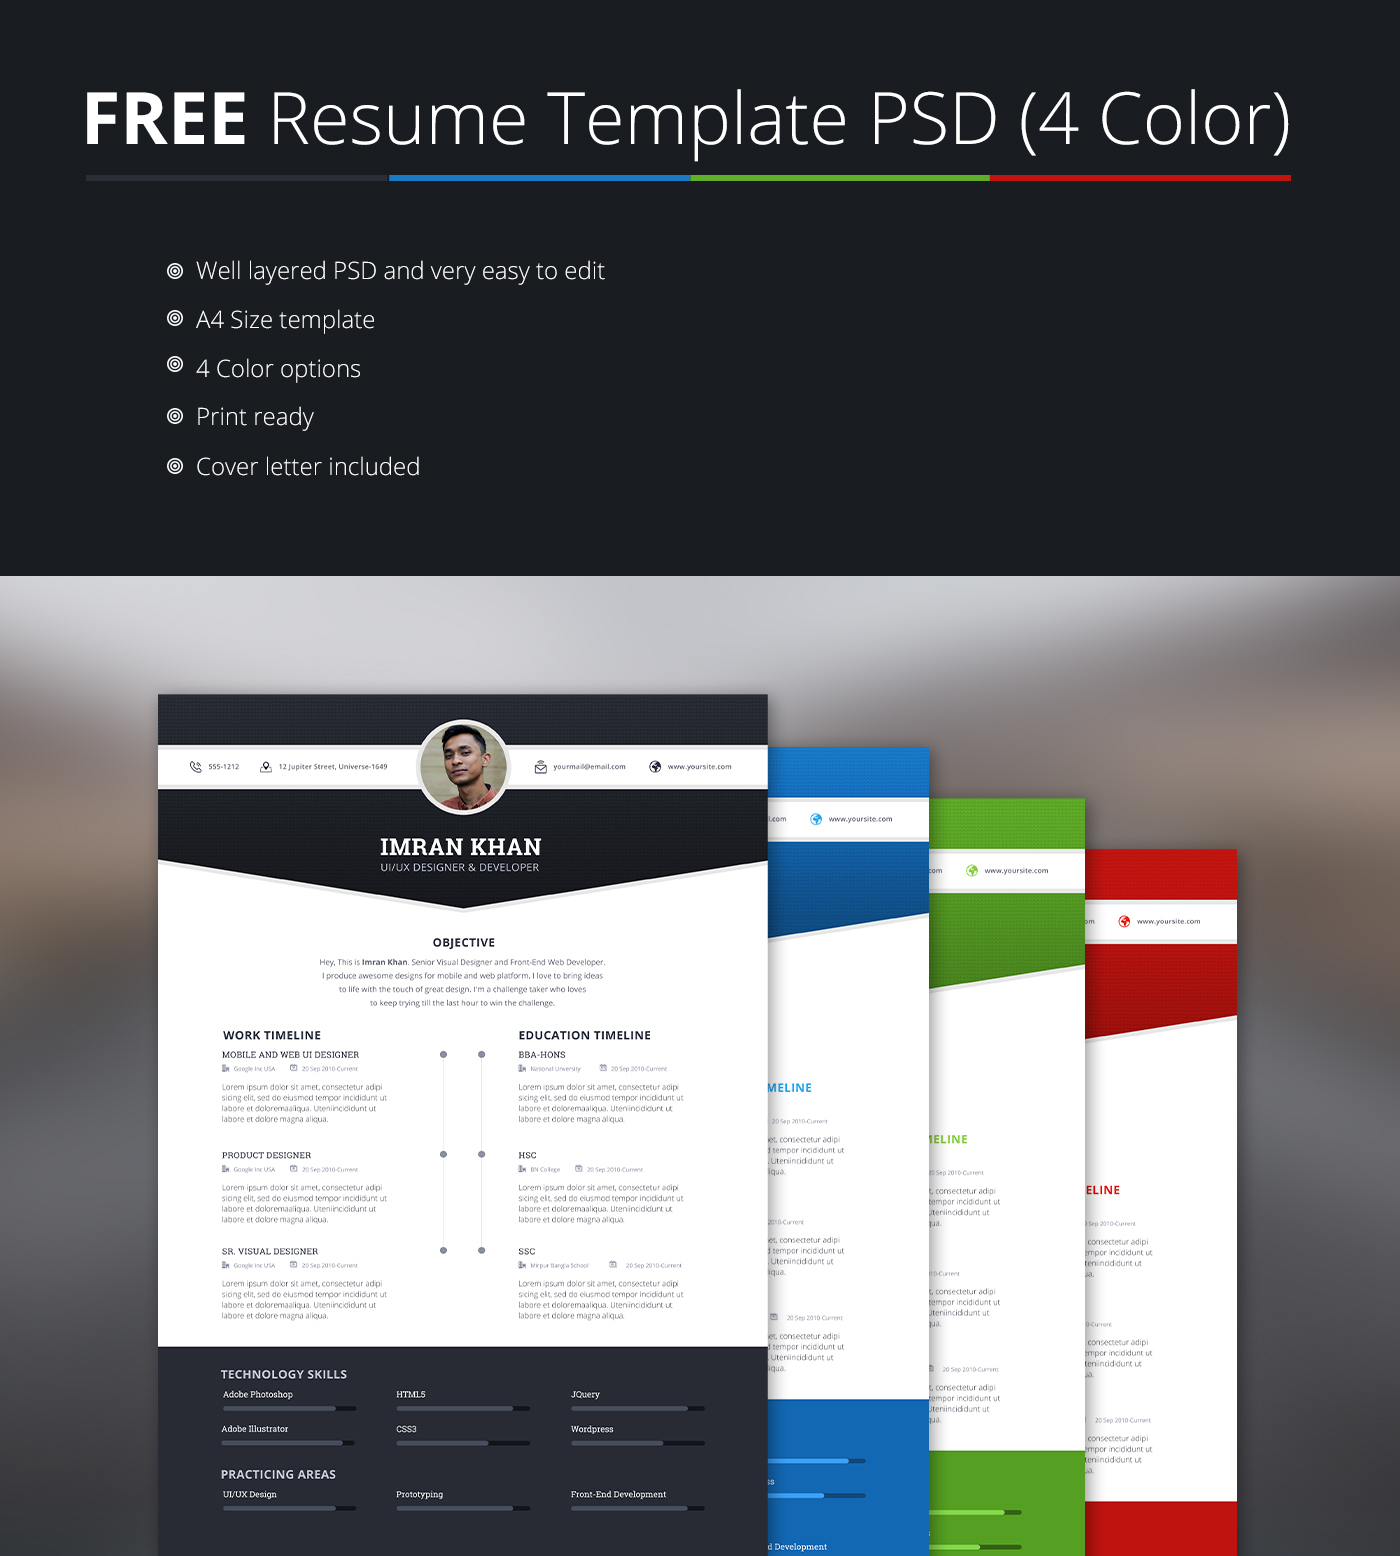 free resume template psd 4 colors on behance - Free Templates